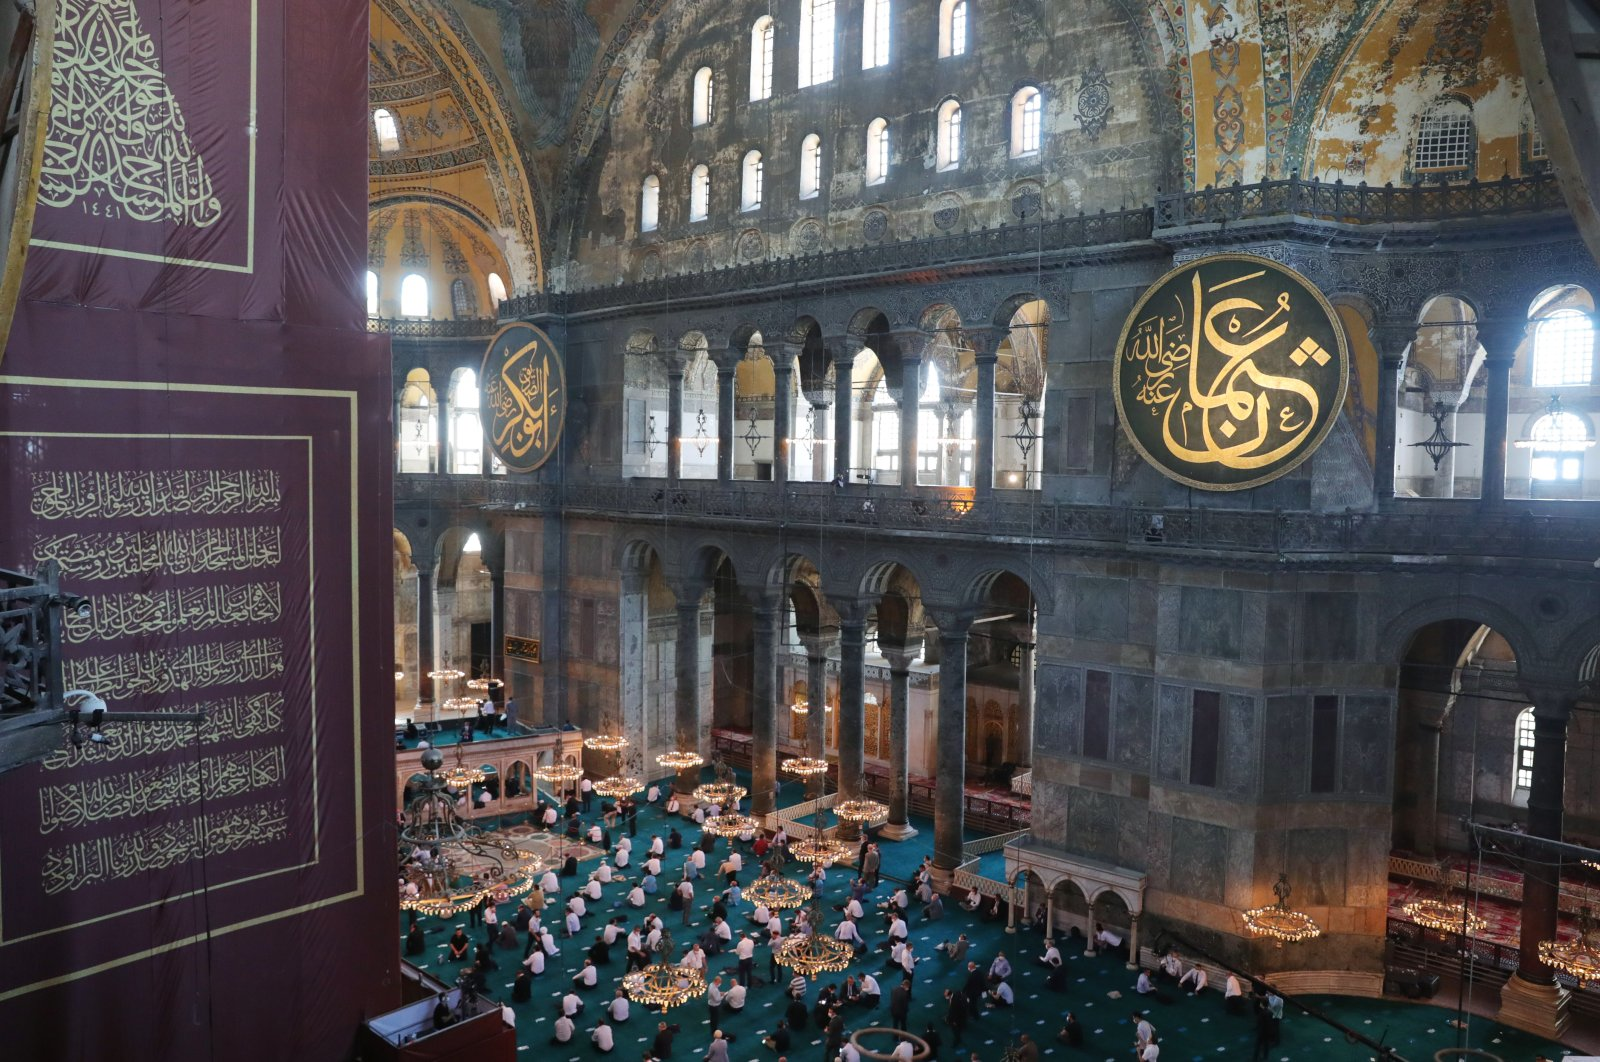 Istanbul's Hagia Sophia Mosque opened to the first prayers in 86 years on Friday with the participation of President Recep Tayyip Erdoğan, July 24, 2020. (AA Photo)